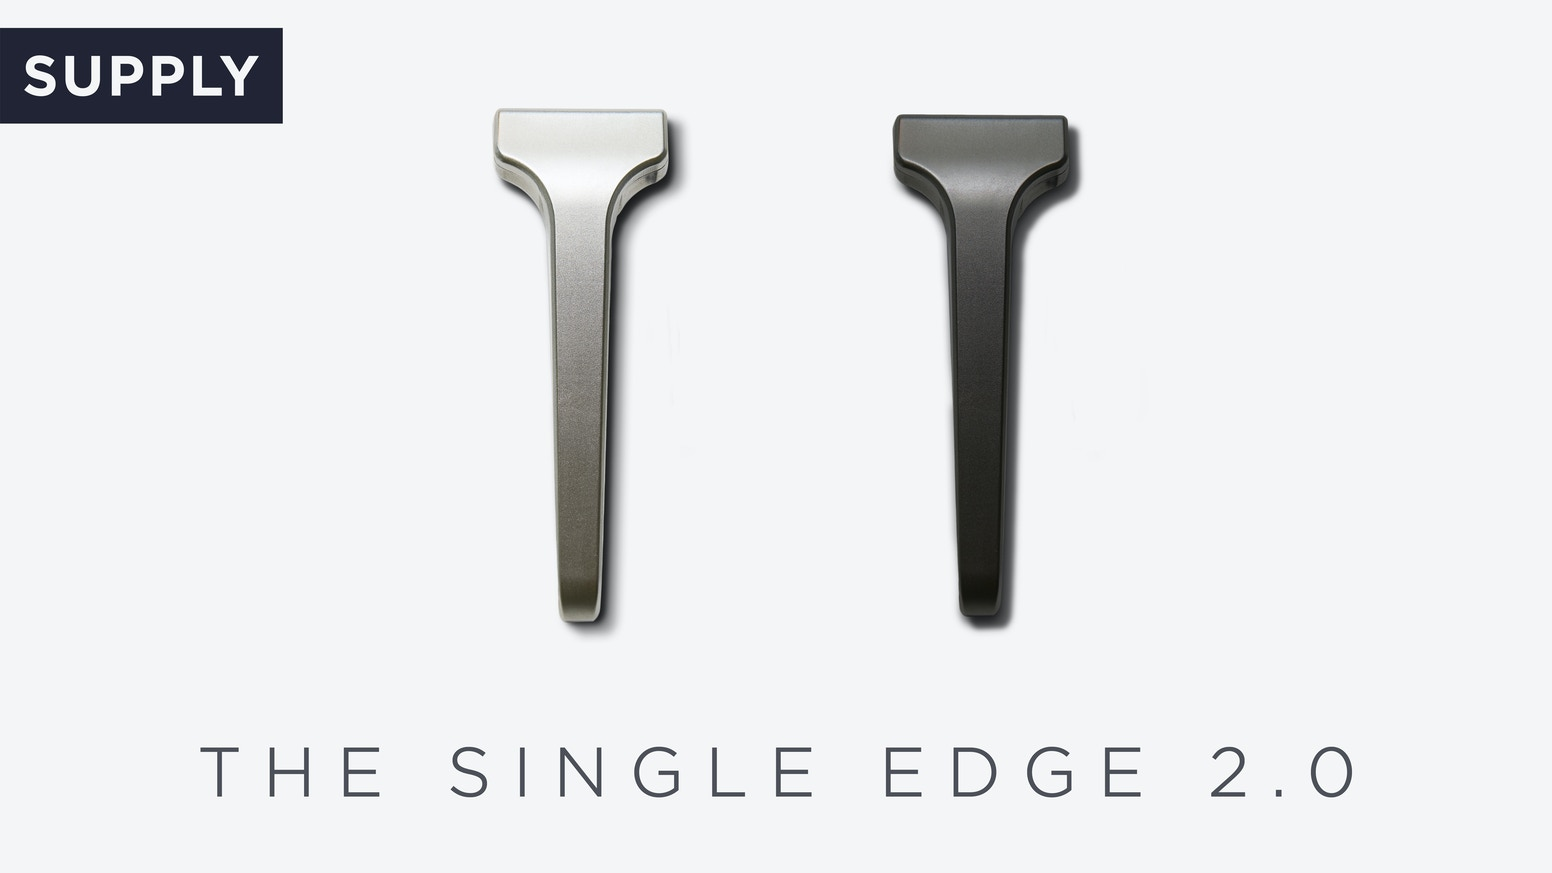 We've taken Kickstarter's most popular single edge razor to the next level. It's time to join the single blade revolution.